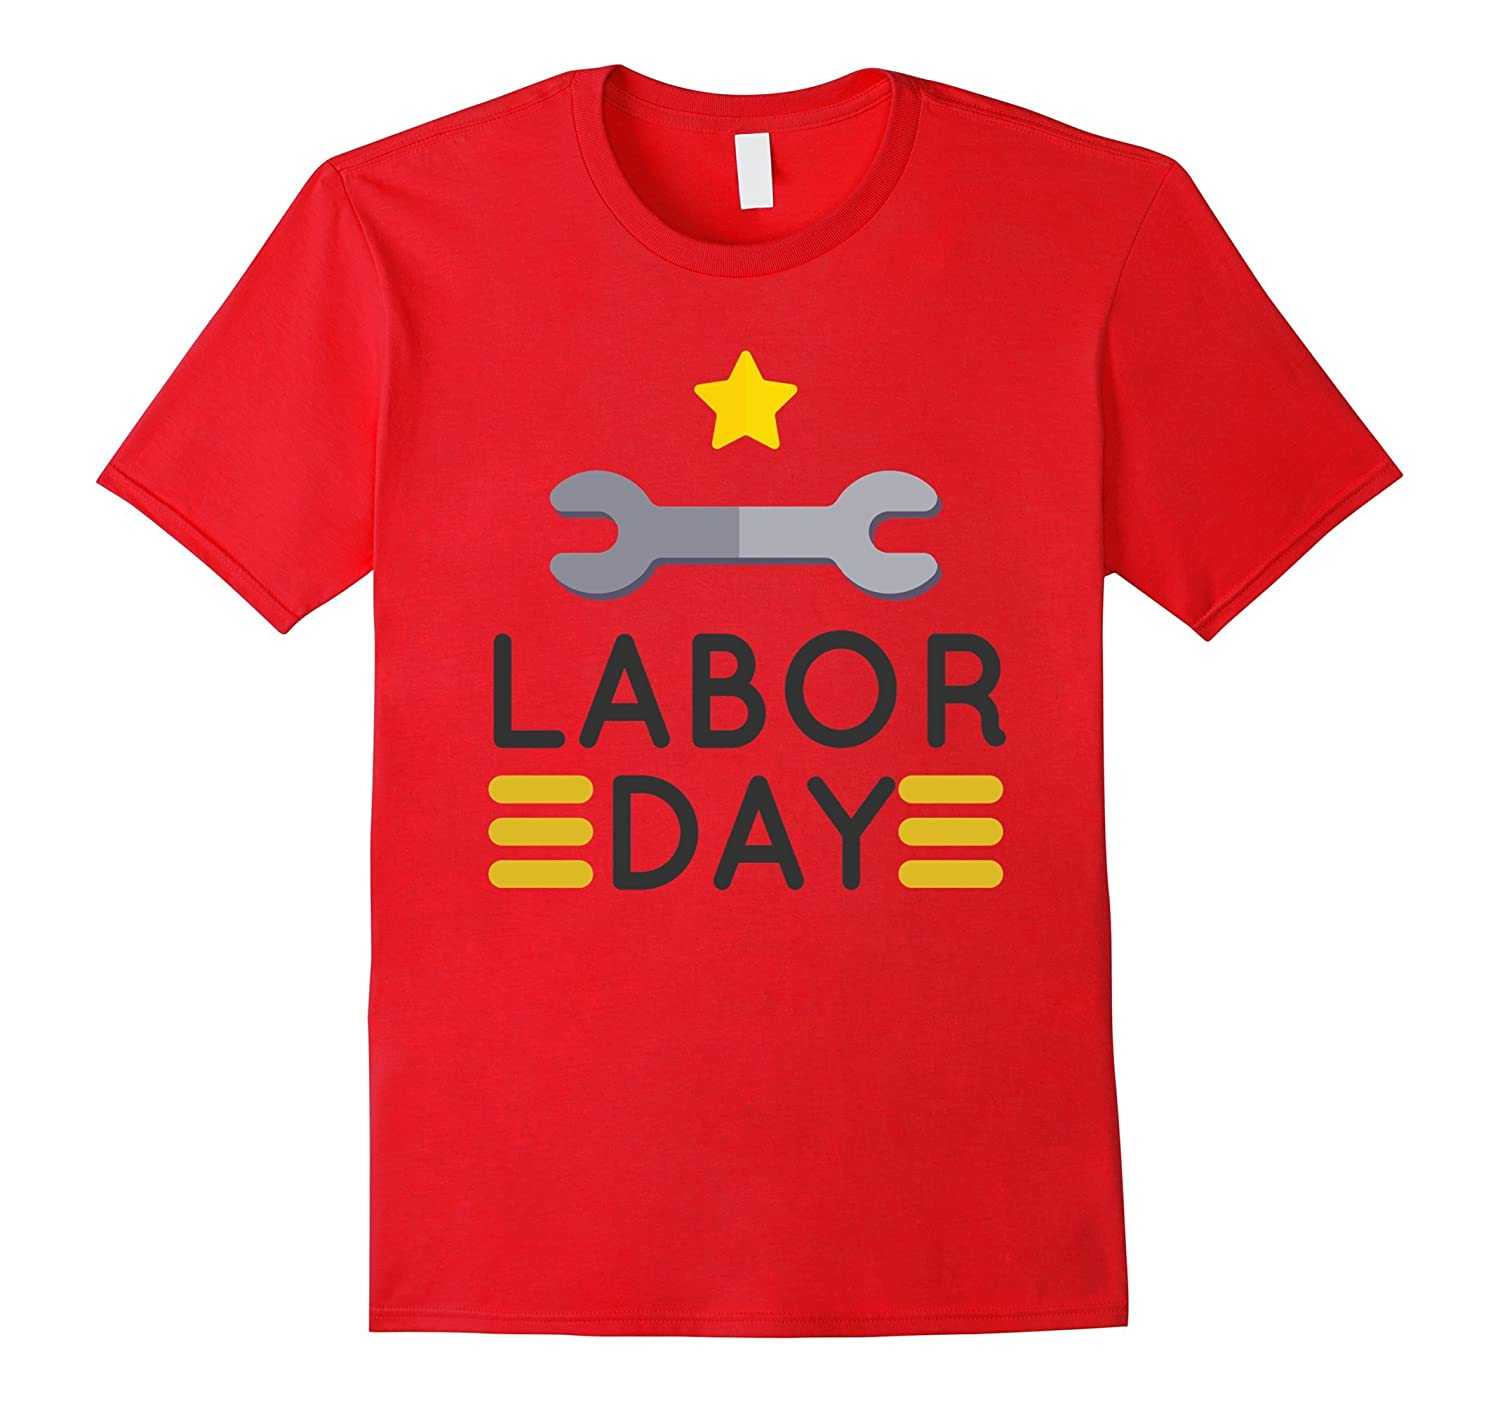 Labor Day 2017 With Wrench T-Shirt For Workers-BN